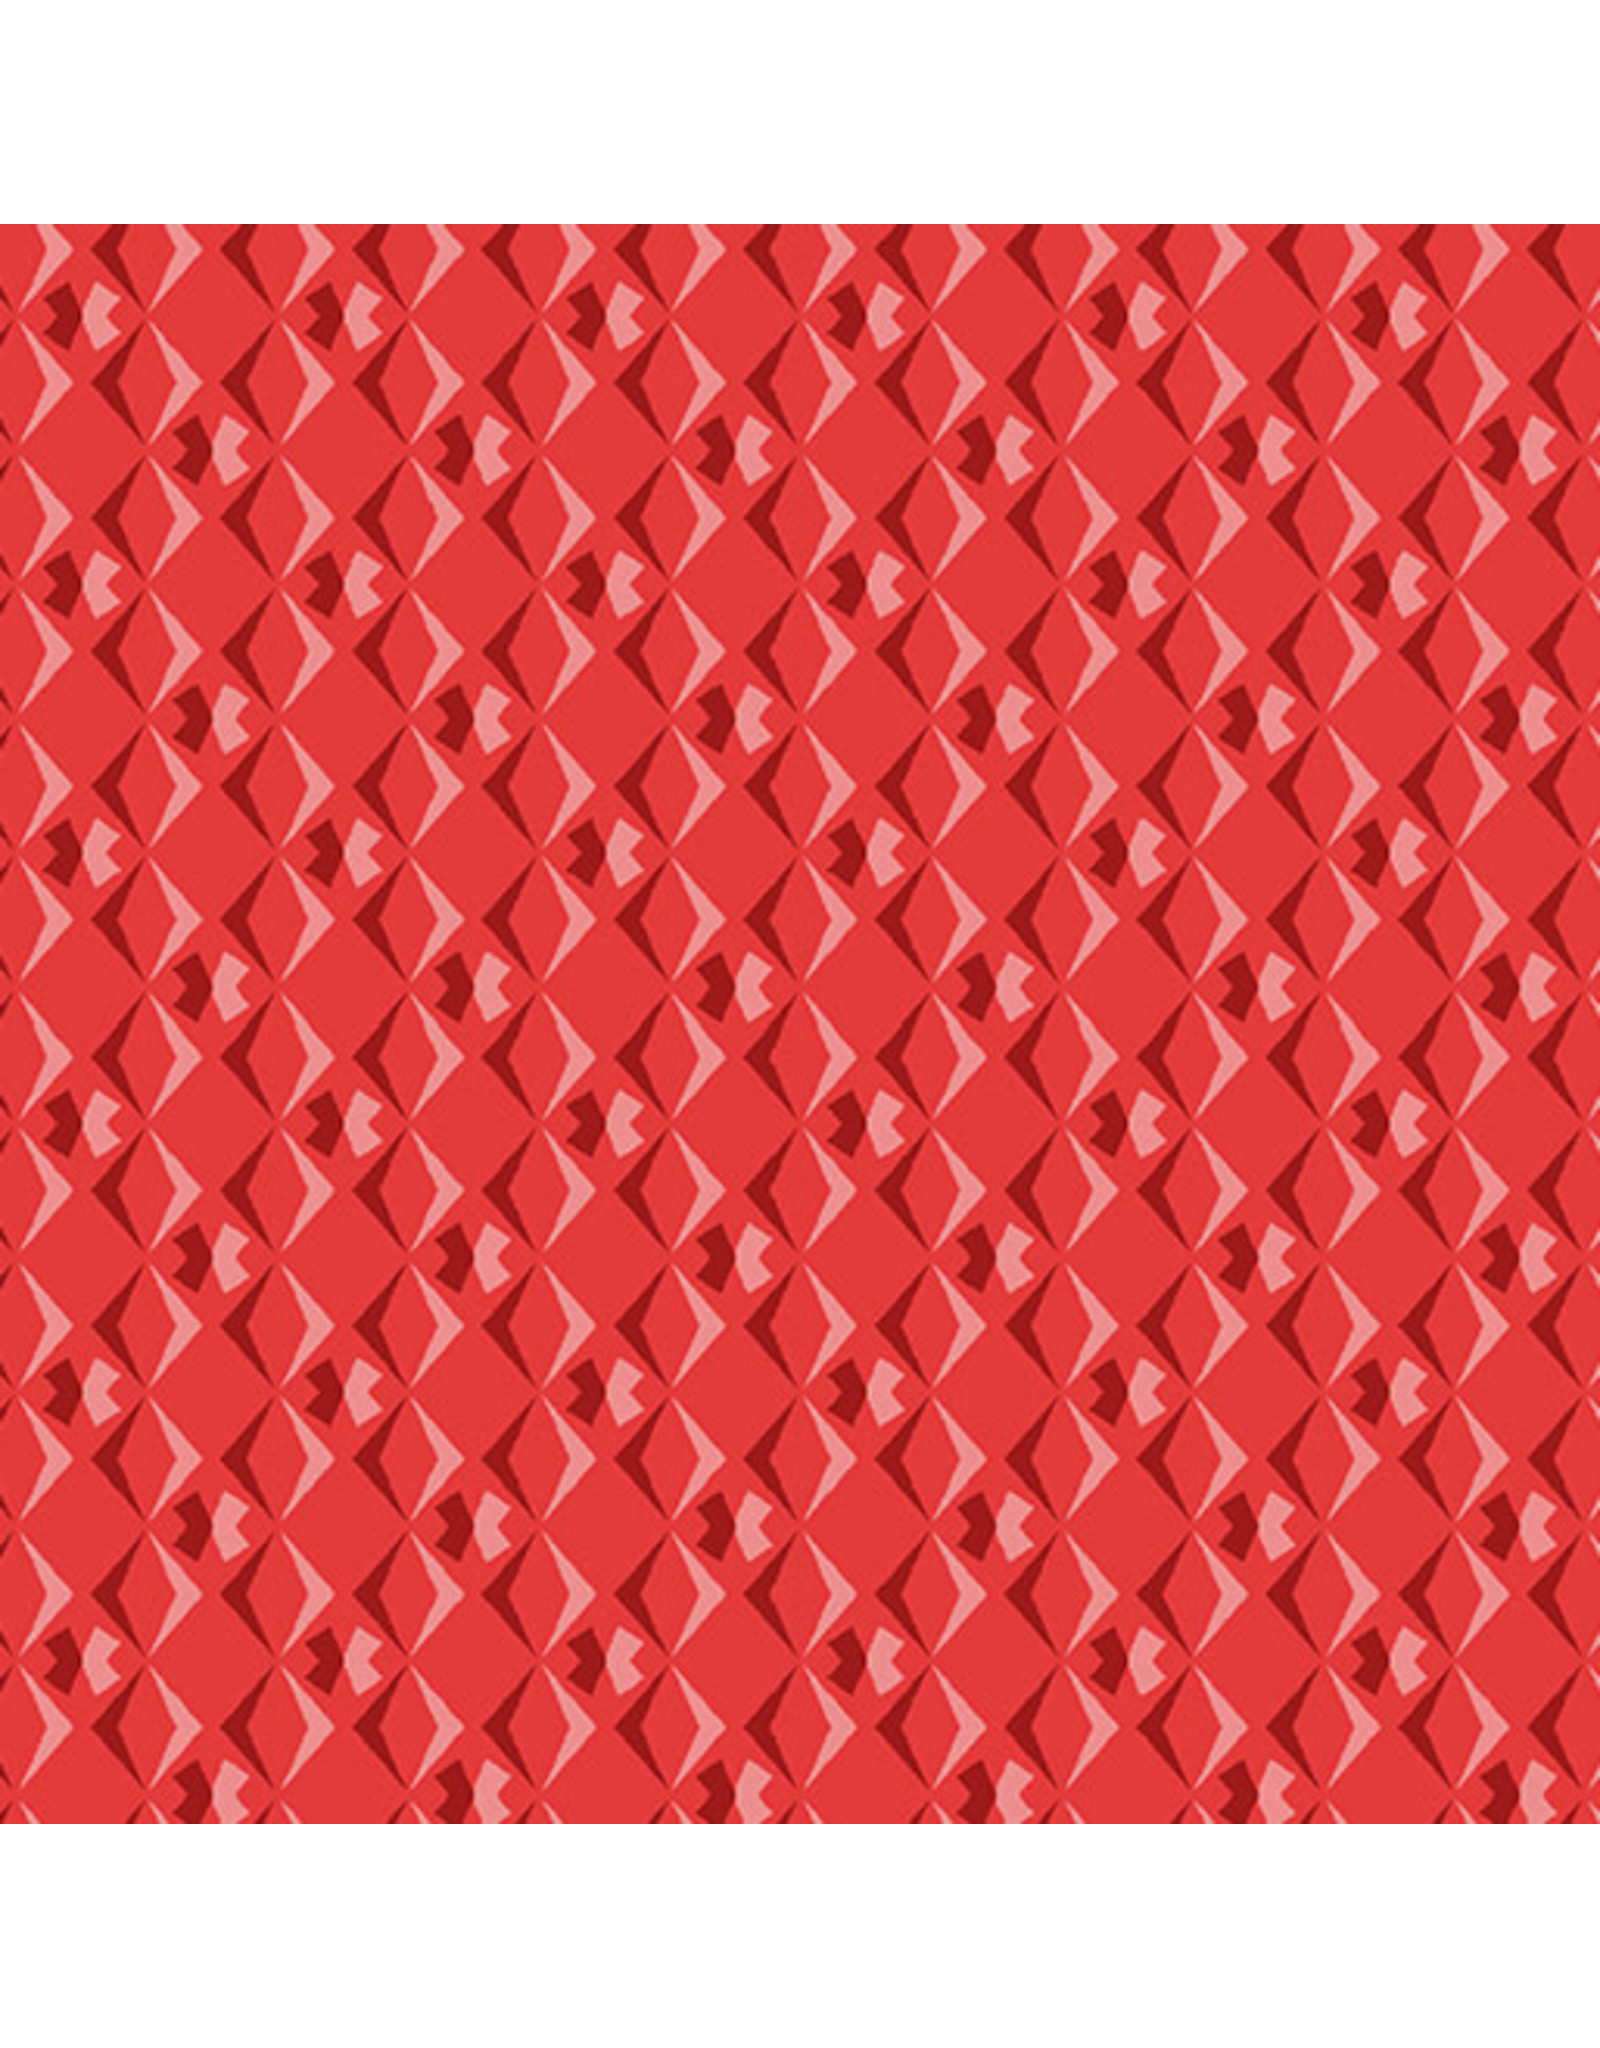 Contempo Good Vibes - Bedazzled Coral